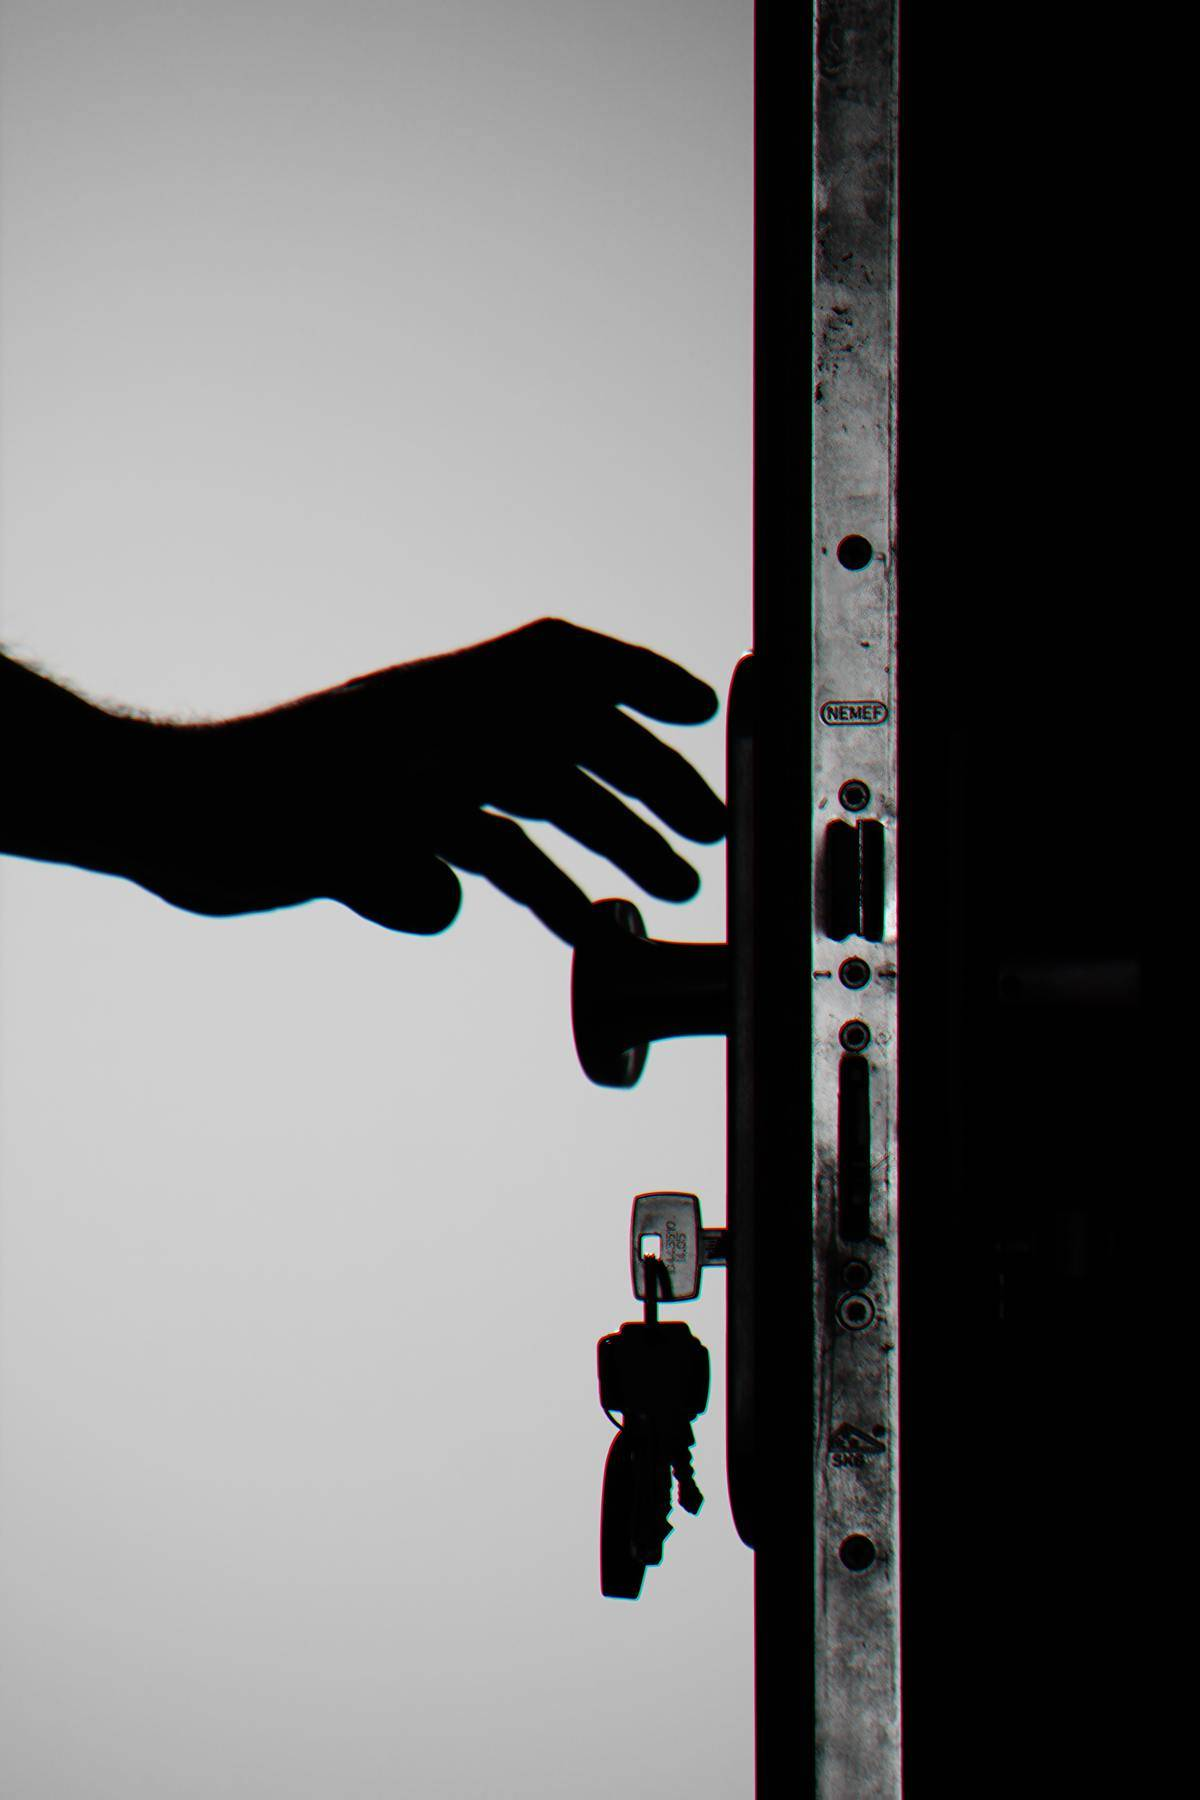 Hand reaching for doorknob with key